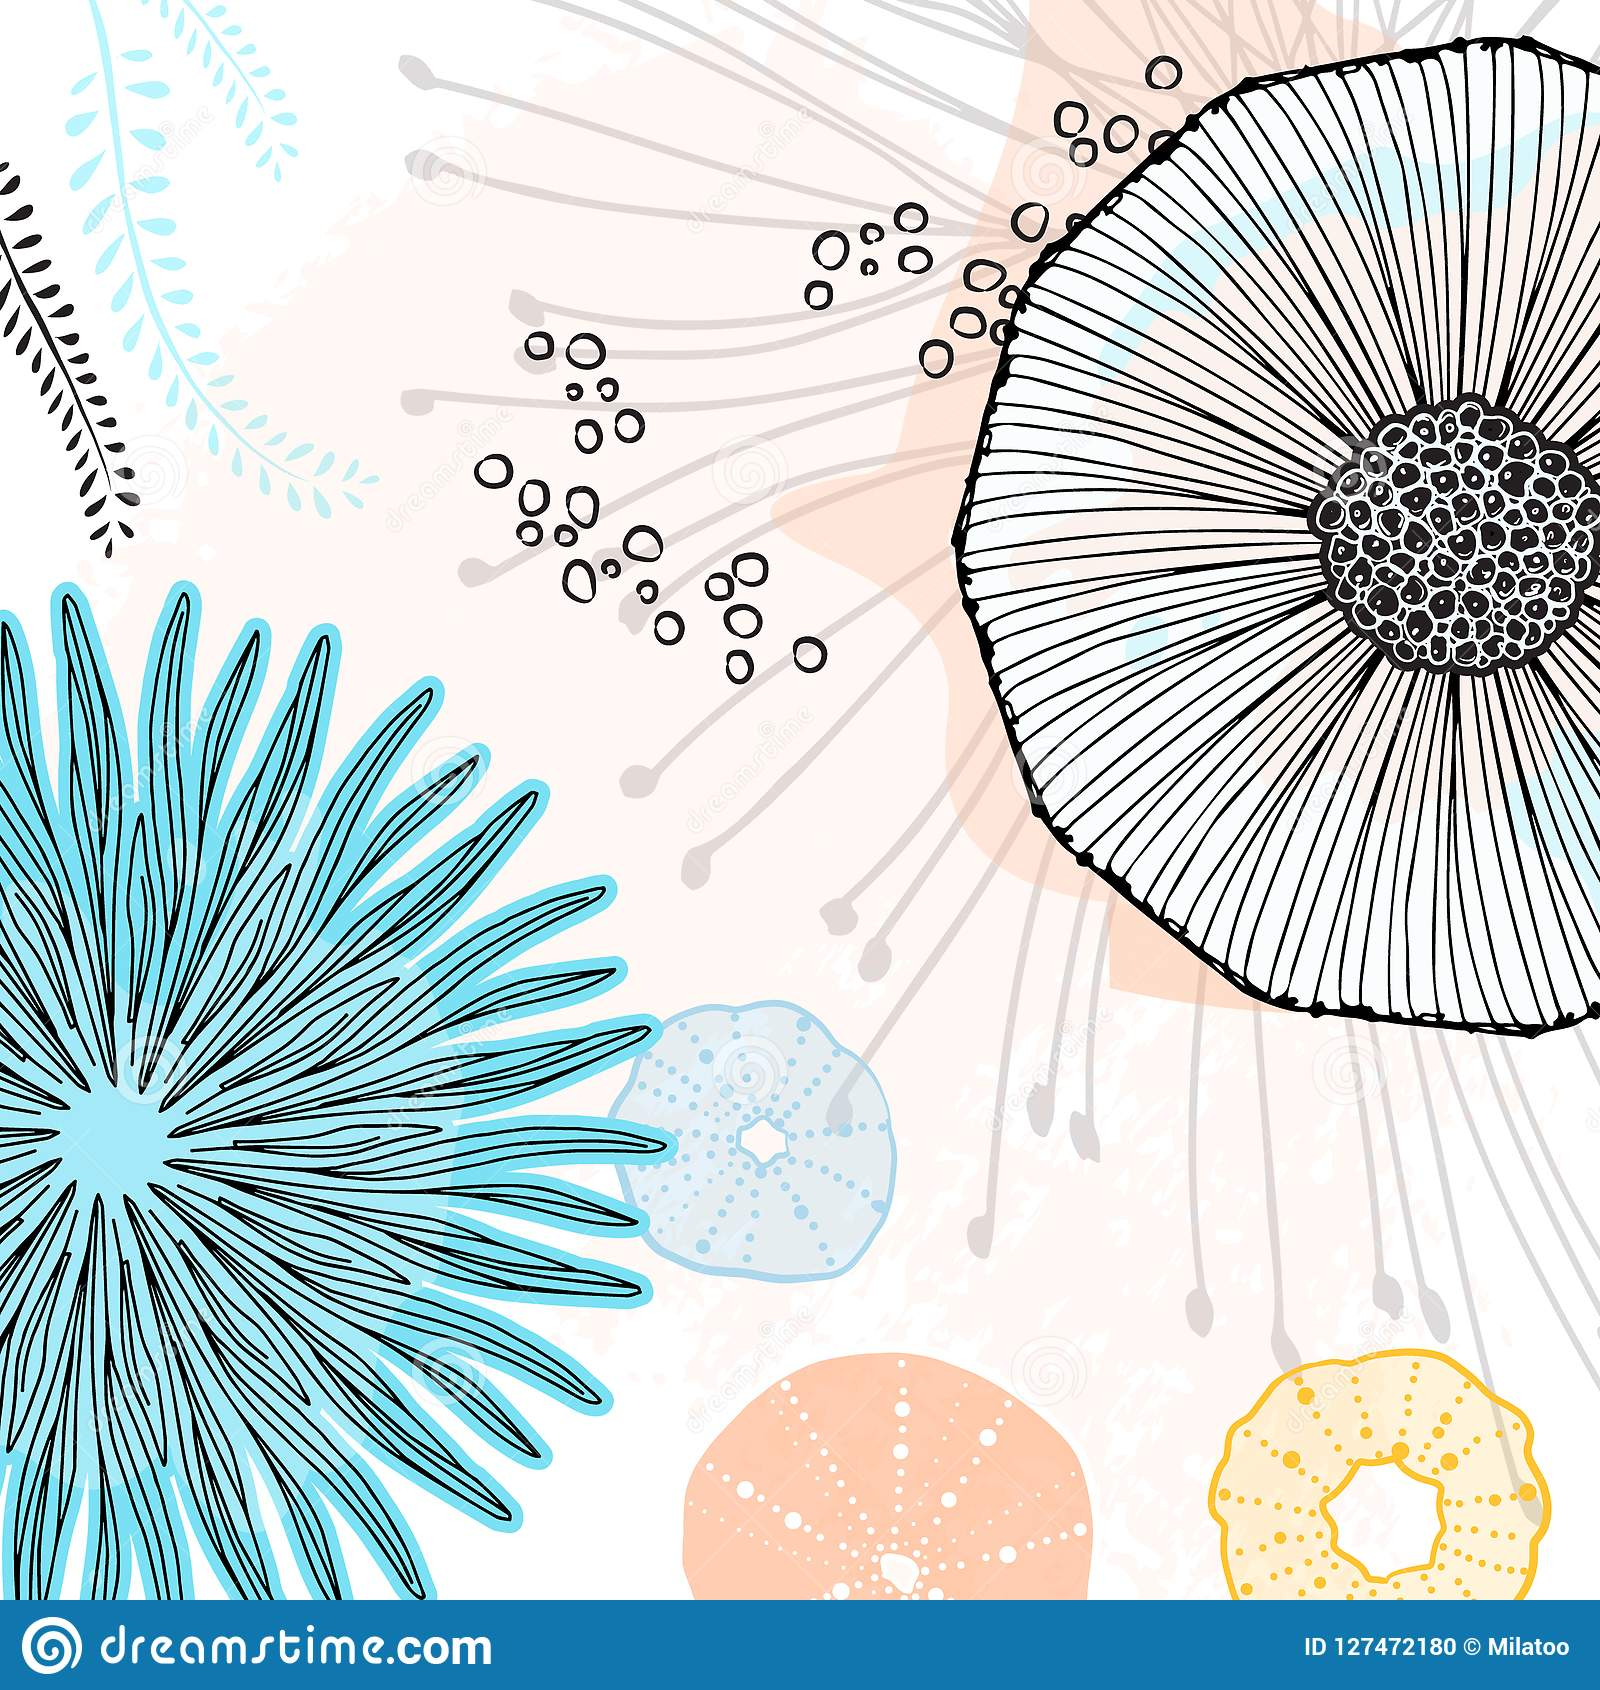 Vector Special Abstract Painting Online Doodle Wallpaper Cool Simple Flower Elements With Creative Background Floral Mural Art Stock Vector Illustration Of Kids Illustratoin 127472180